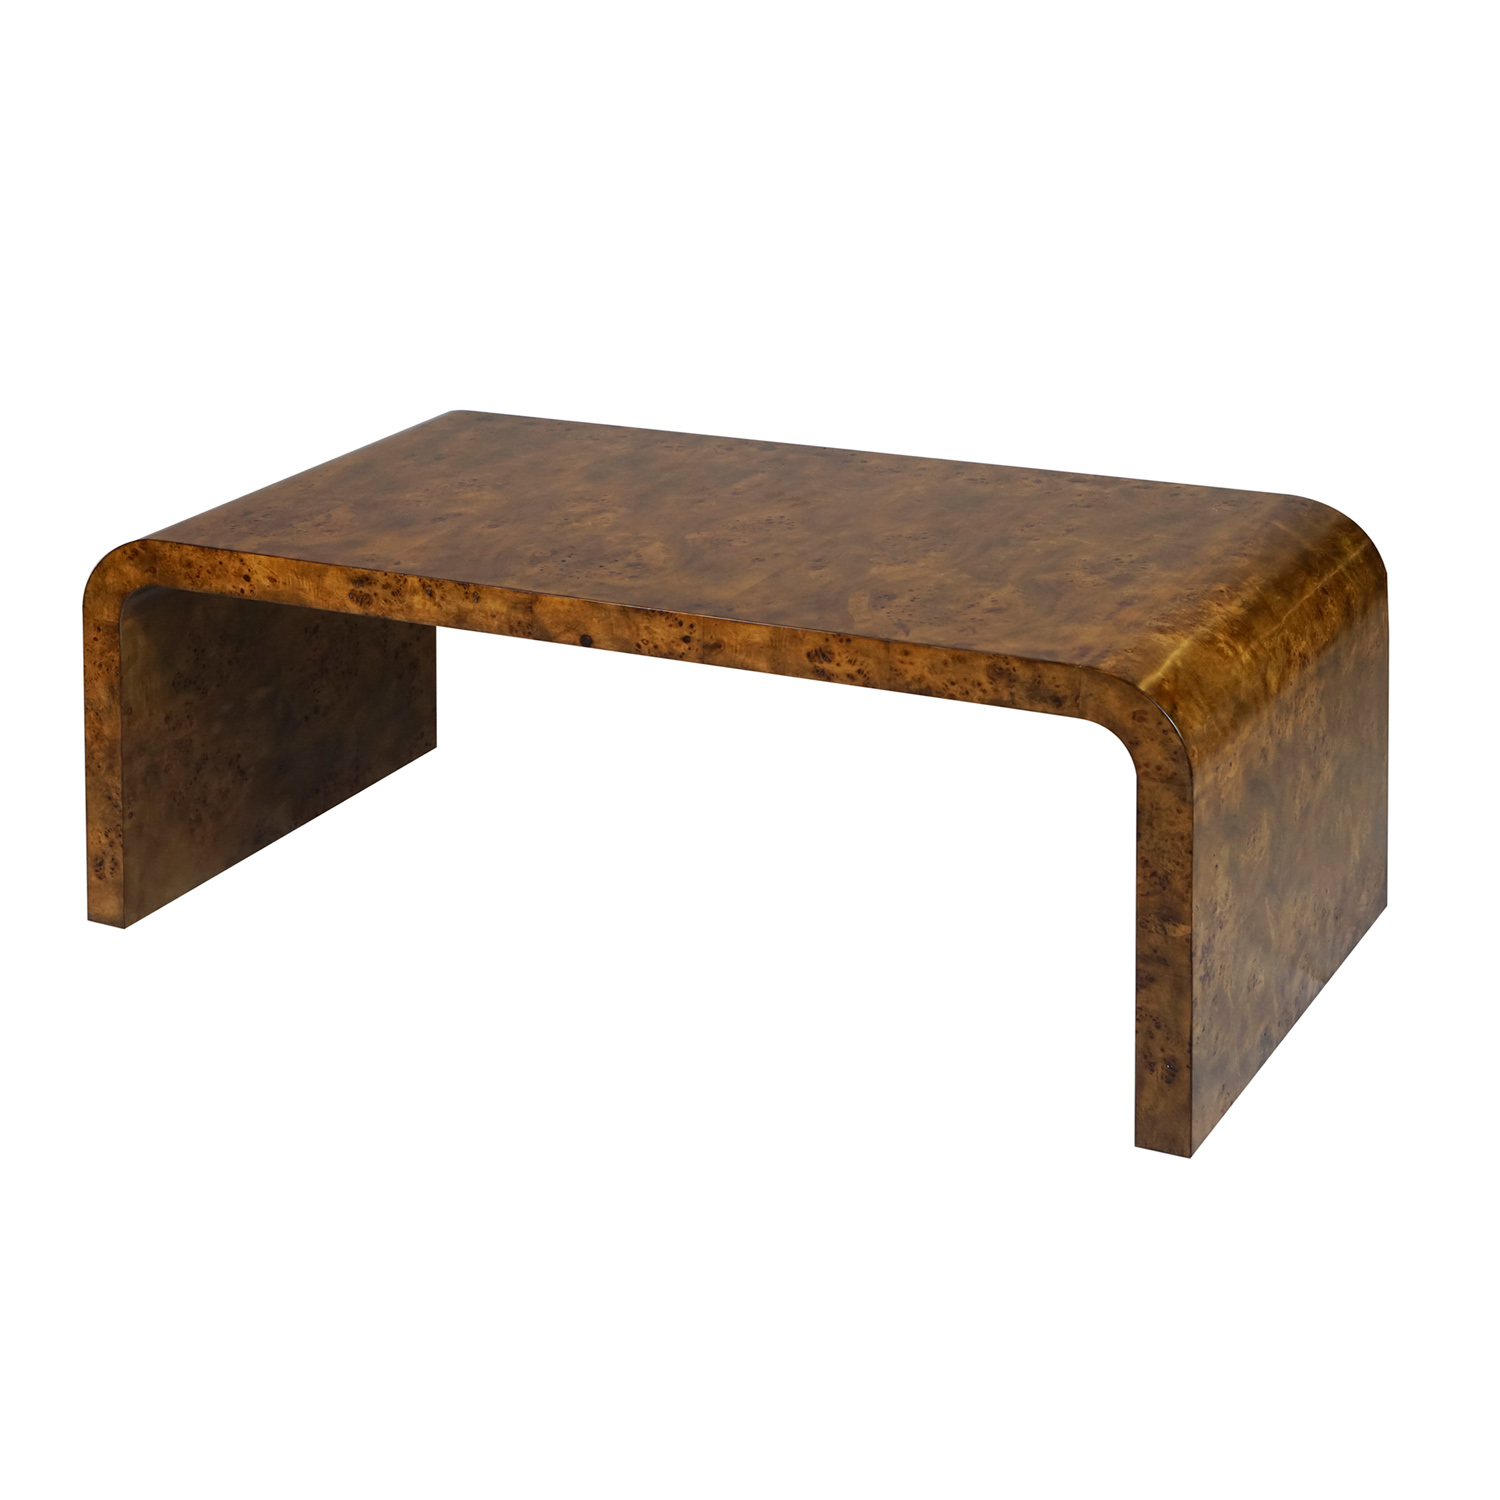 waterfall dark burlwood coffee table coffe tables dear keaton angle view burl wood accent leg hardware round outdoor tablecloth furniture behind sofa mosaic patio wooden bedside